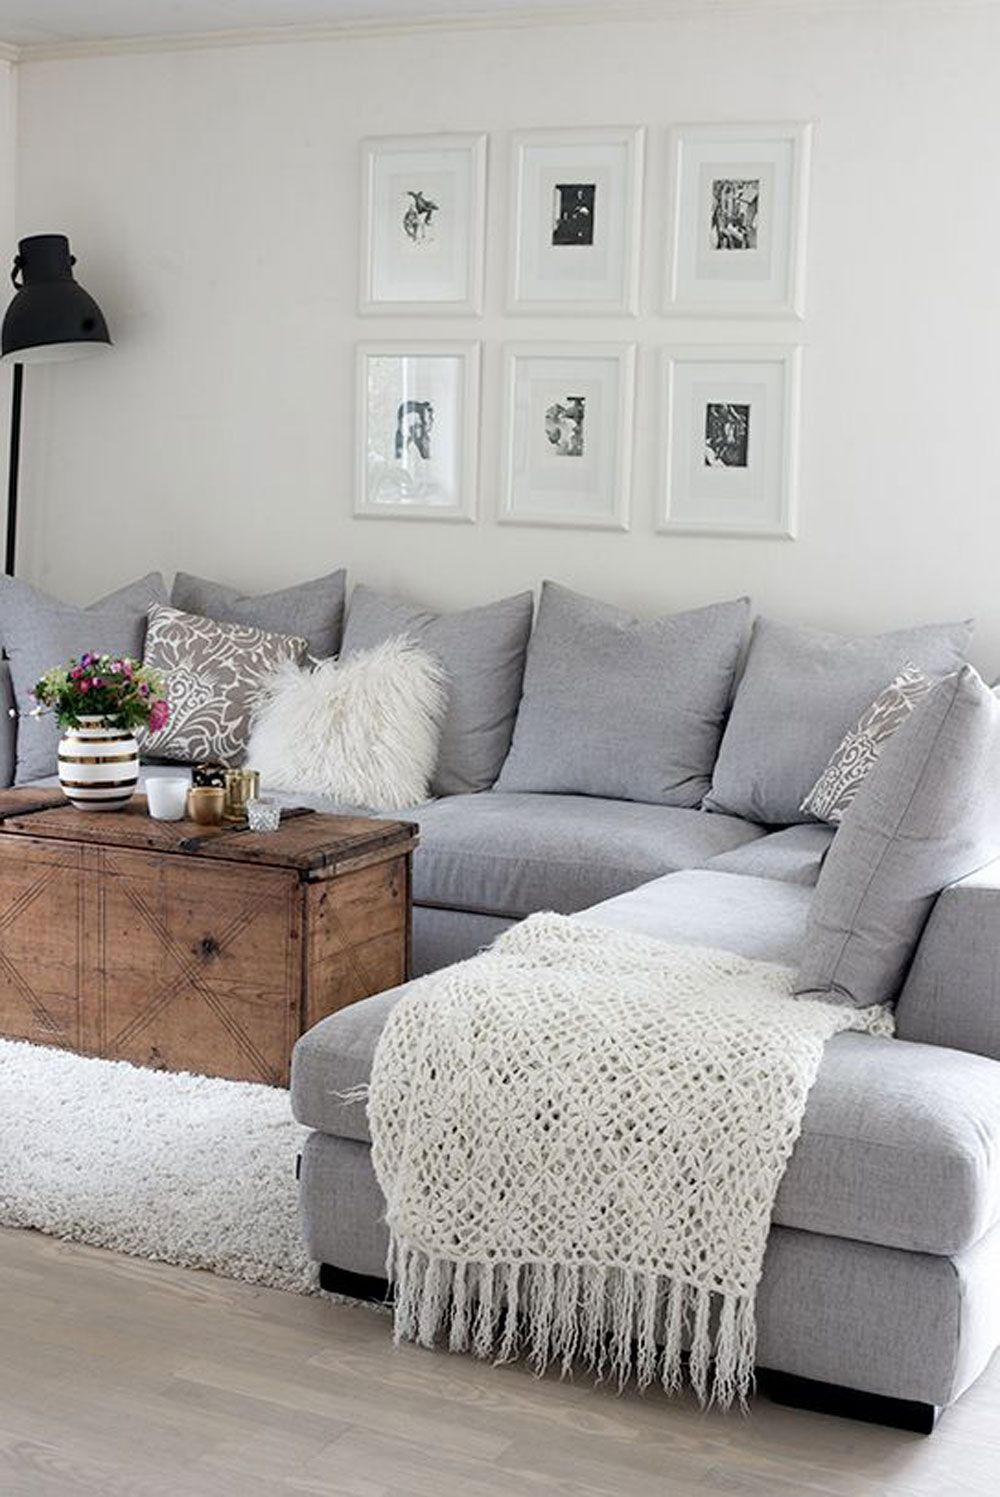 Grey Couch Living Room Decor Apartment Small Living Room Decor